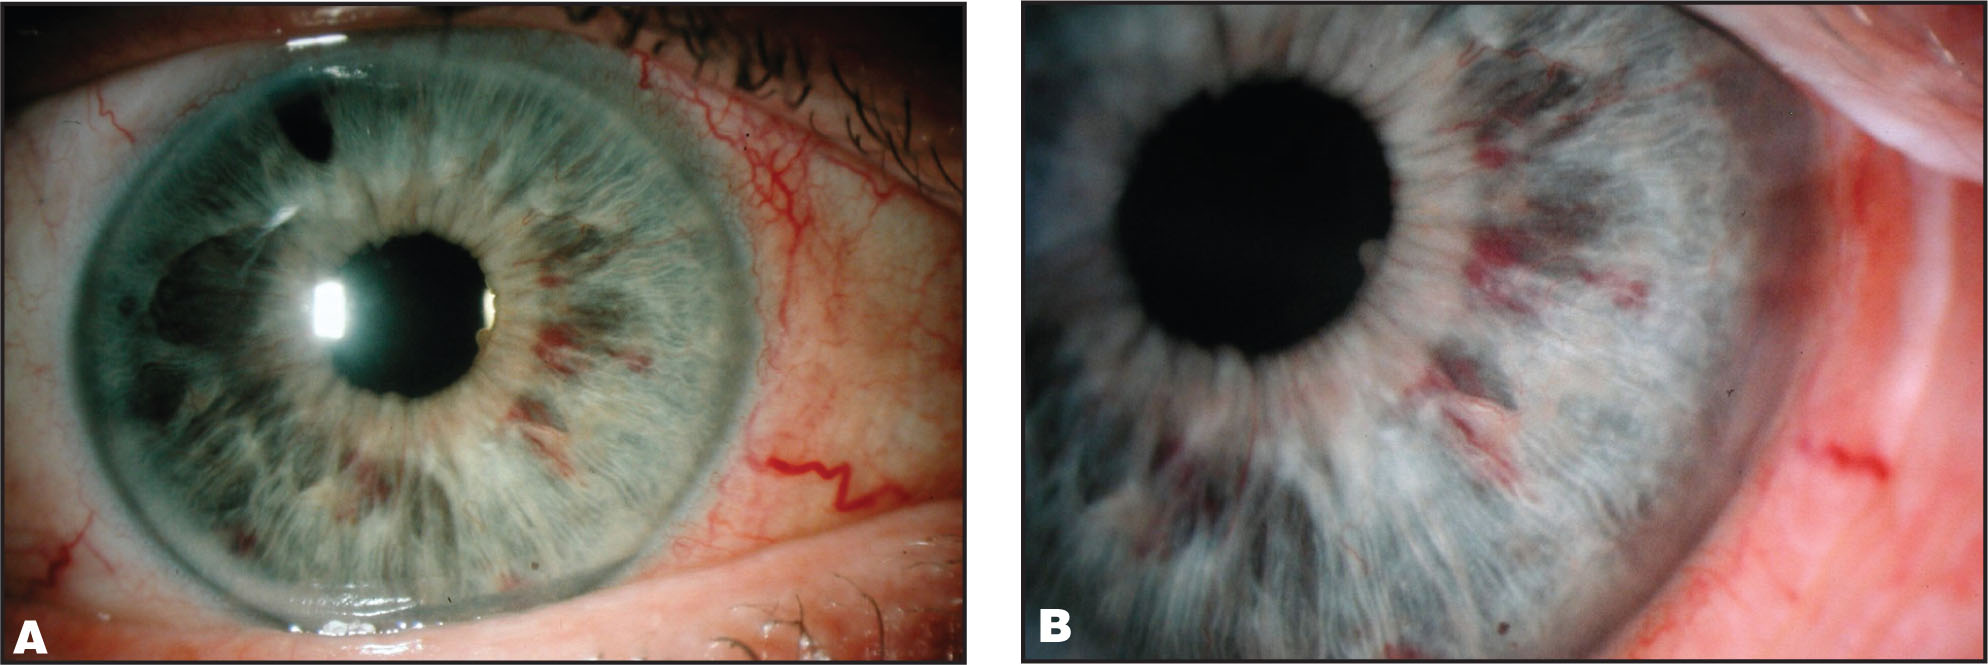 (A) Low and (B) High Magnification View of Iris Hemorrhages in a Case of Rubeotic Glaucoma Following Routine Transscleral Diode Laser Cycloablation. The Location of the Hemorrhages in the Mid-Periphery Corresponded with the Presence of the Rubeotic Vessels. A Peripheral Iridotomy Previously Performed Due to a Potentially Occludable Drainage Angle is also Visible.